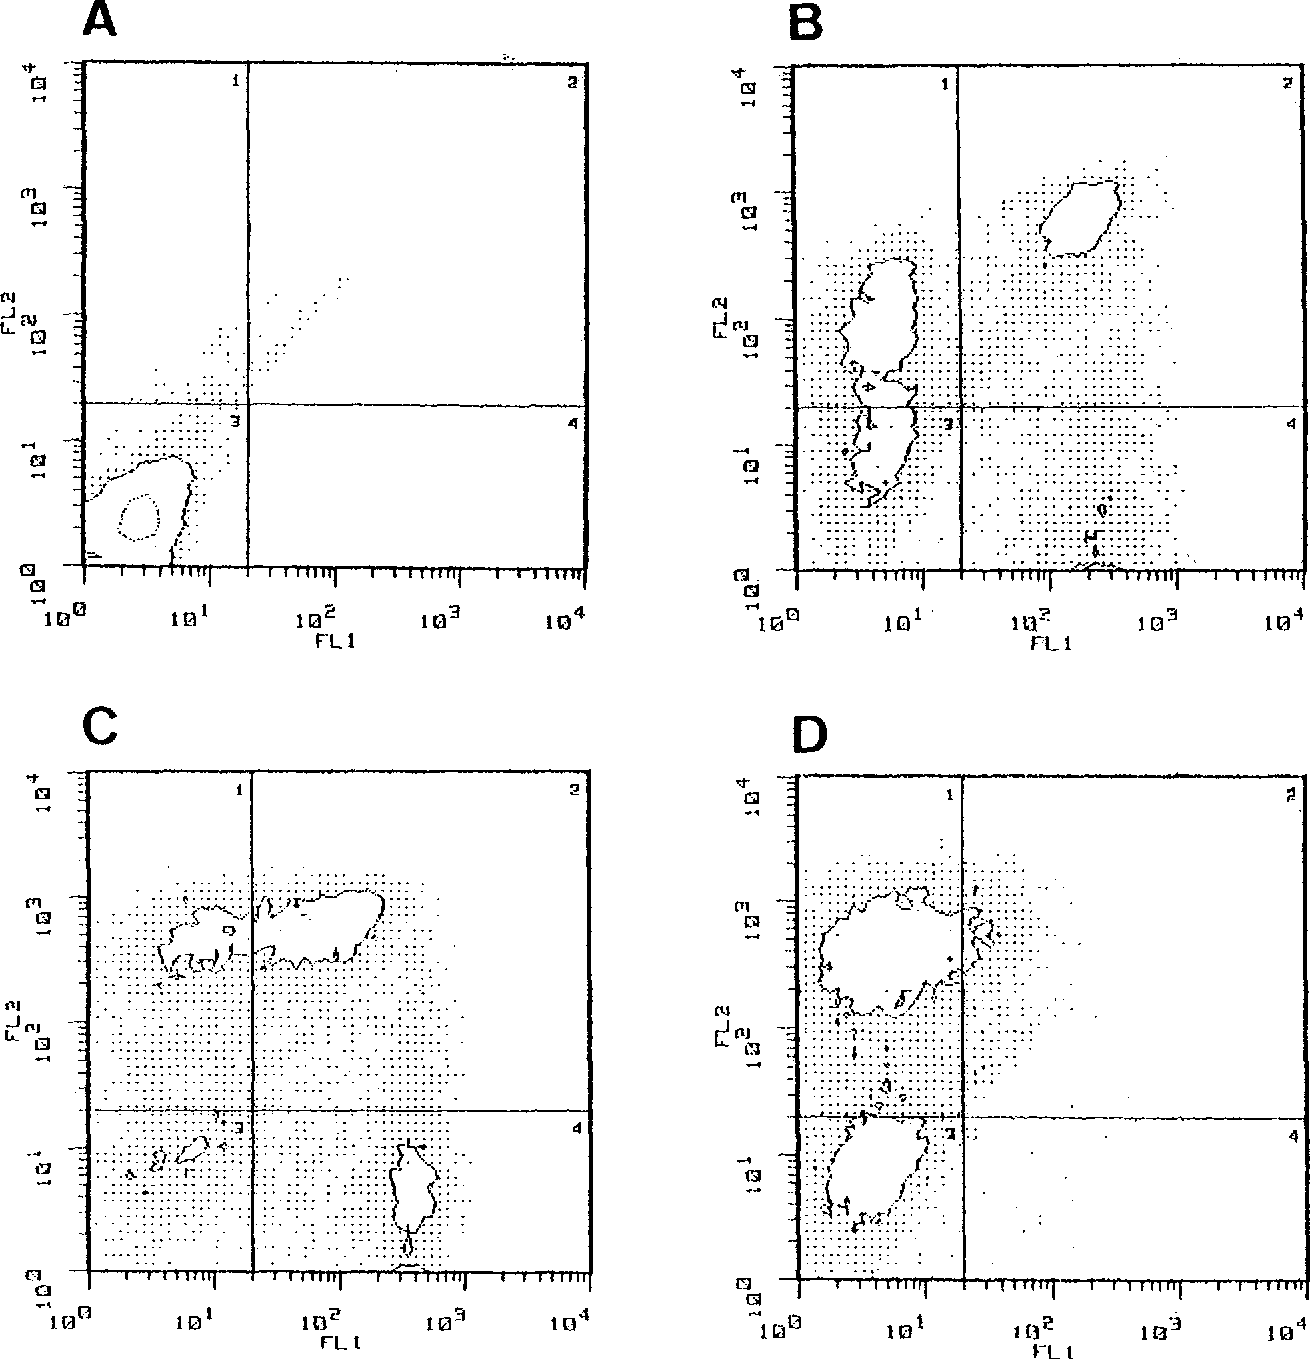 """Fig 1. Flow cytometric analysis of day 7 LAK cells from a single patient. (A) Histogram showing negative control staining with antimouse FlTC and antimouse phycoerythrin (PE). (B) Histogram showing FL1 FlTC anti-CD3 and FL2 PE anti-CD8. The CDEbrbM population coexpresses the CD3 receptor whereas the CD8* cells are largely CD3-. (C) Histogram showing FL1 FITC anti-CD8 and F U PE anti-Leu-19 (CD56). The CDBb'*' cells are largely Leu-19- whereas the CDe"""" cells coexpress the Leu-19 antigen. (D) Histogram showing FL1 FITC anti-CD16 and F U PE anti-Leu-19 (CD66). The Leu-19' cells are either CD16- or CD16d""""."""